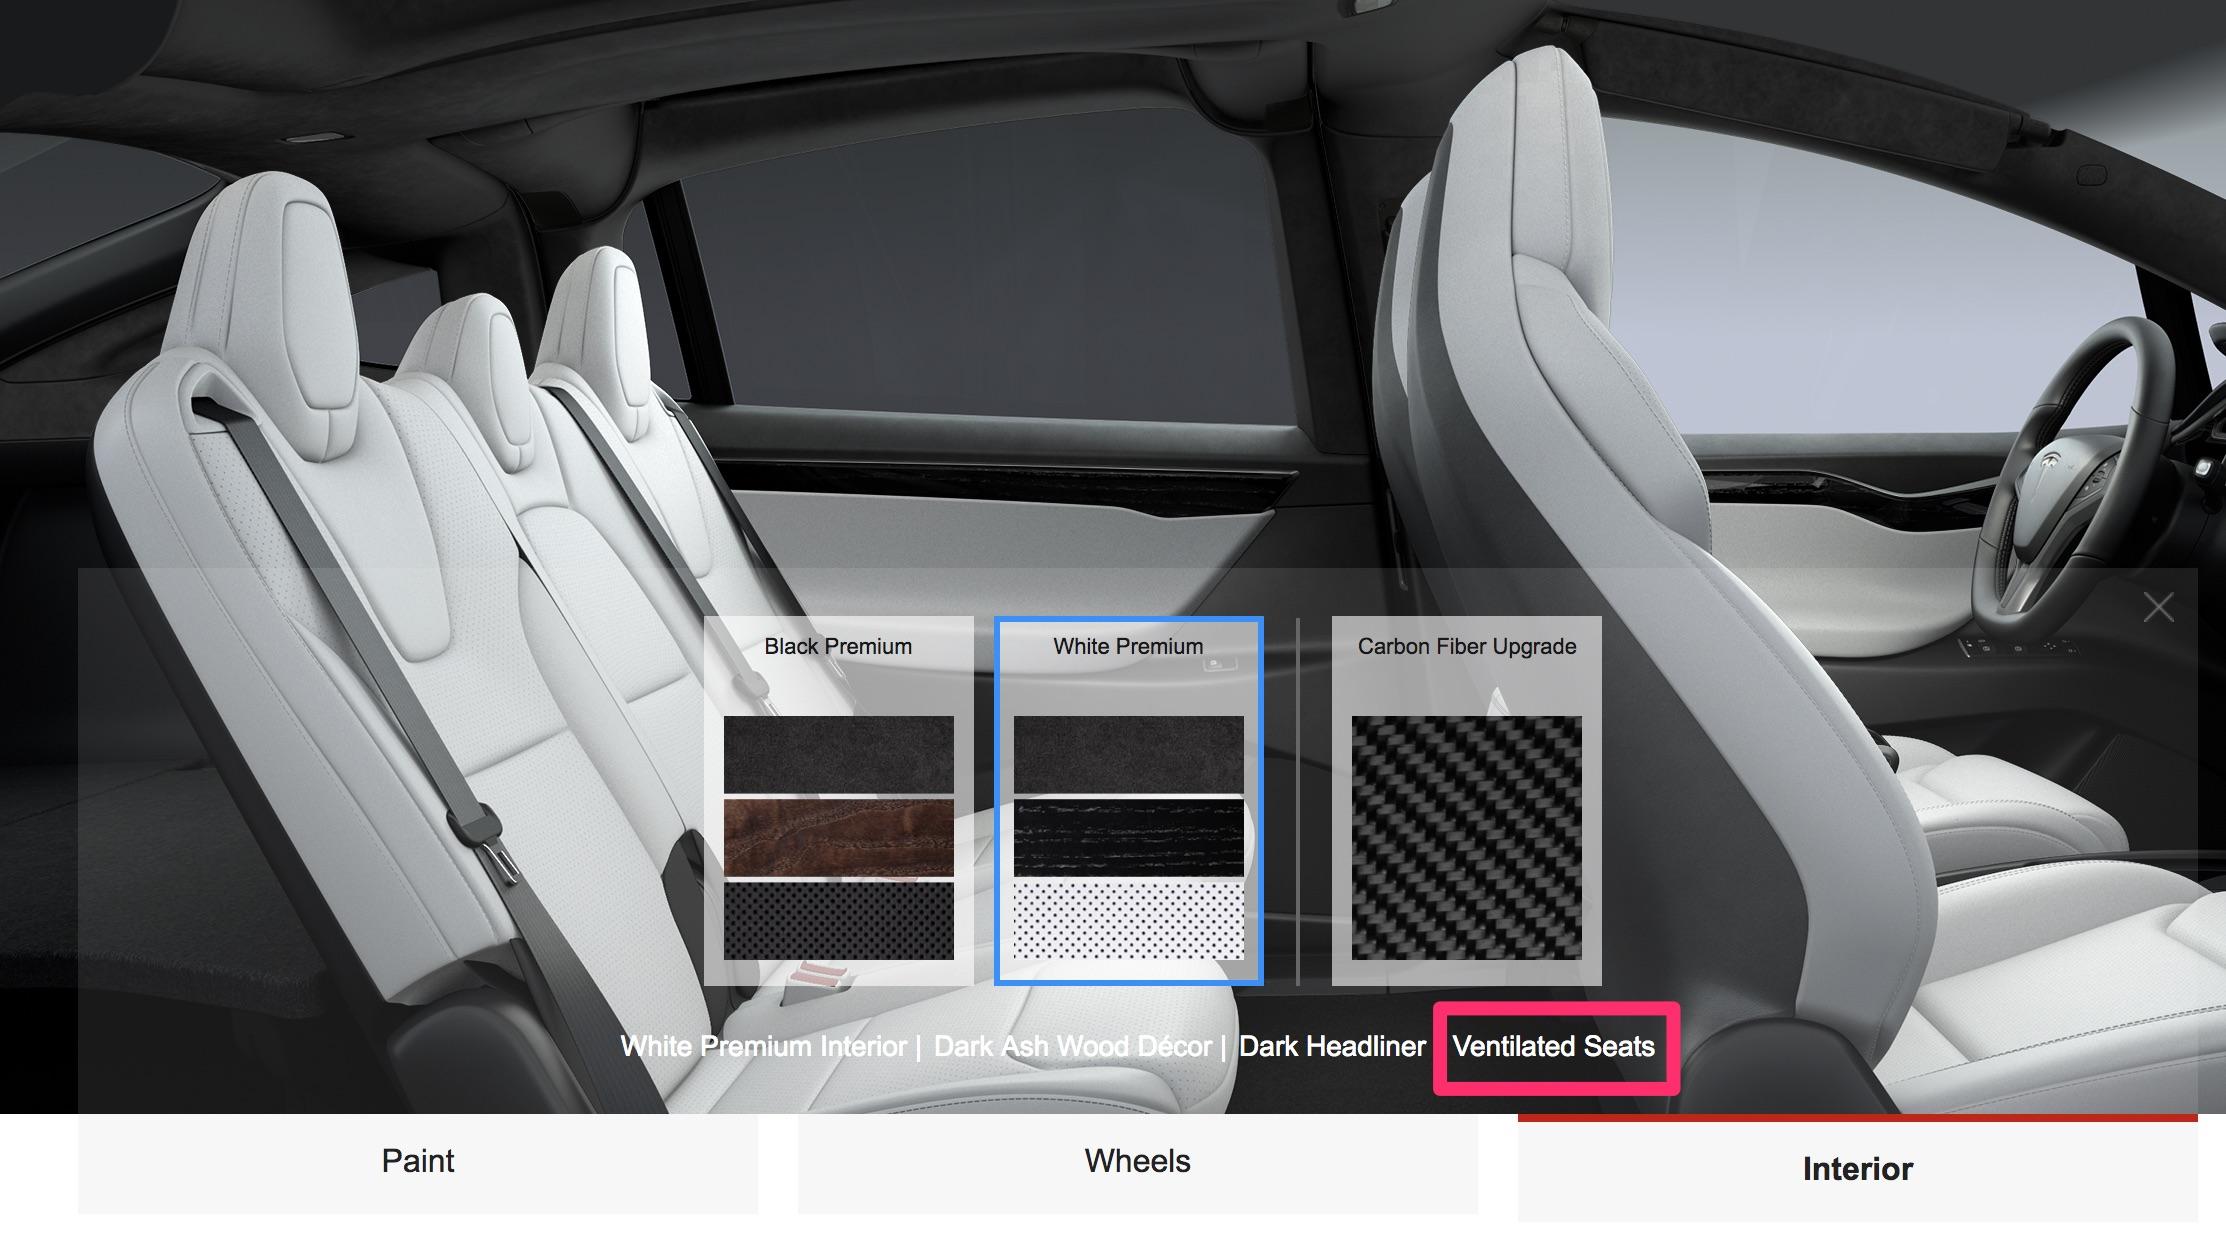 model-x-ventilated-seats-interior-option